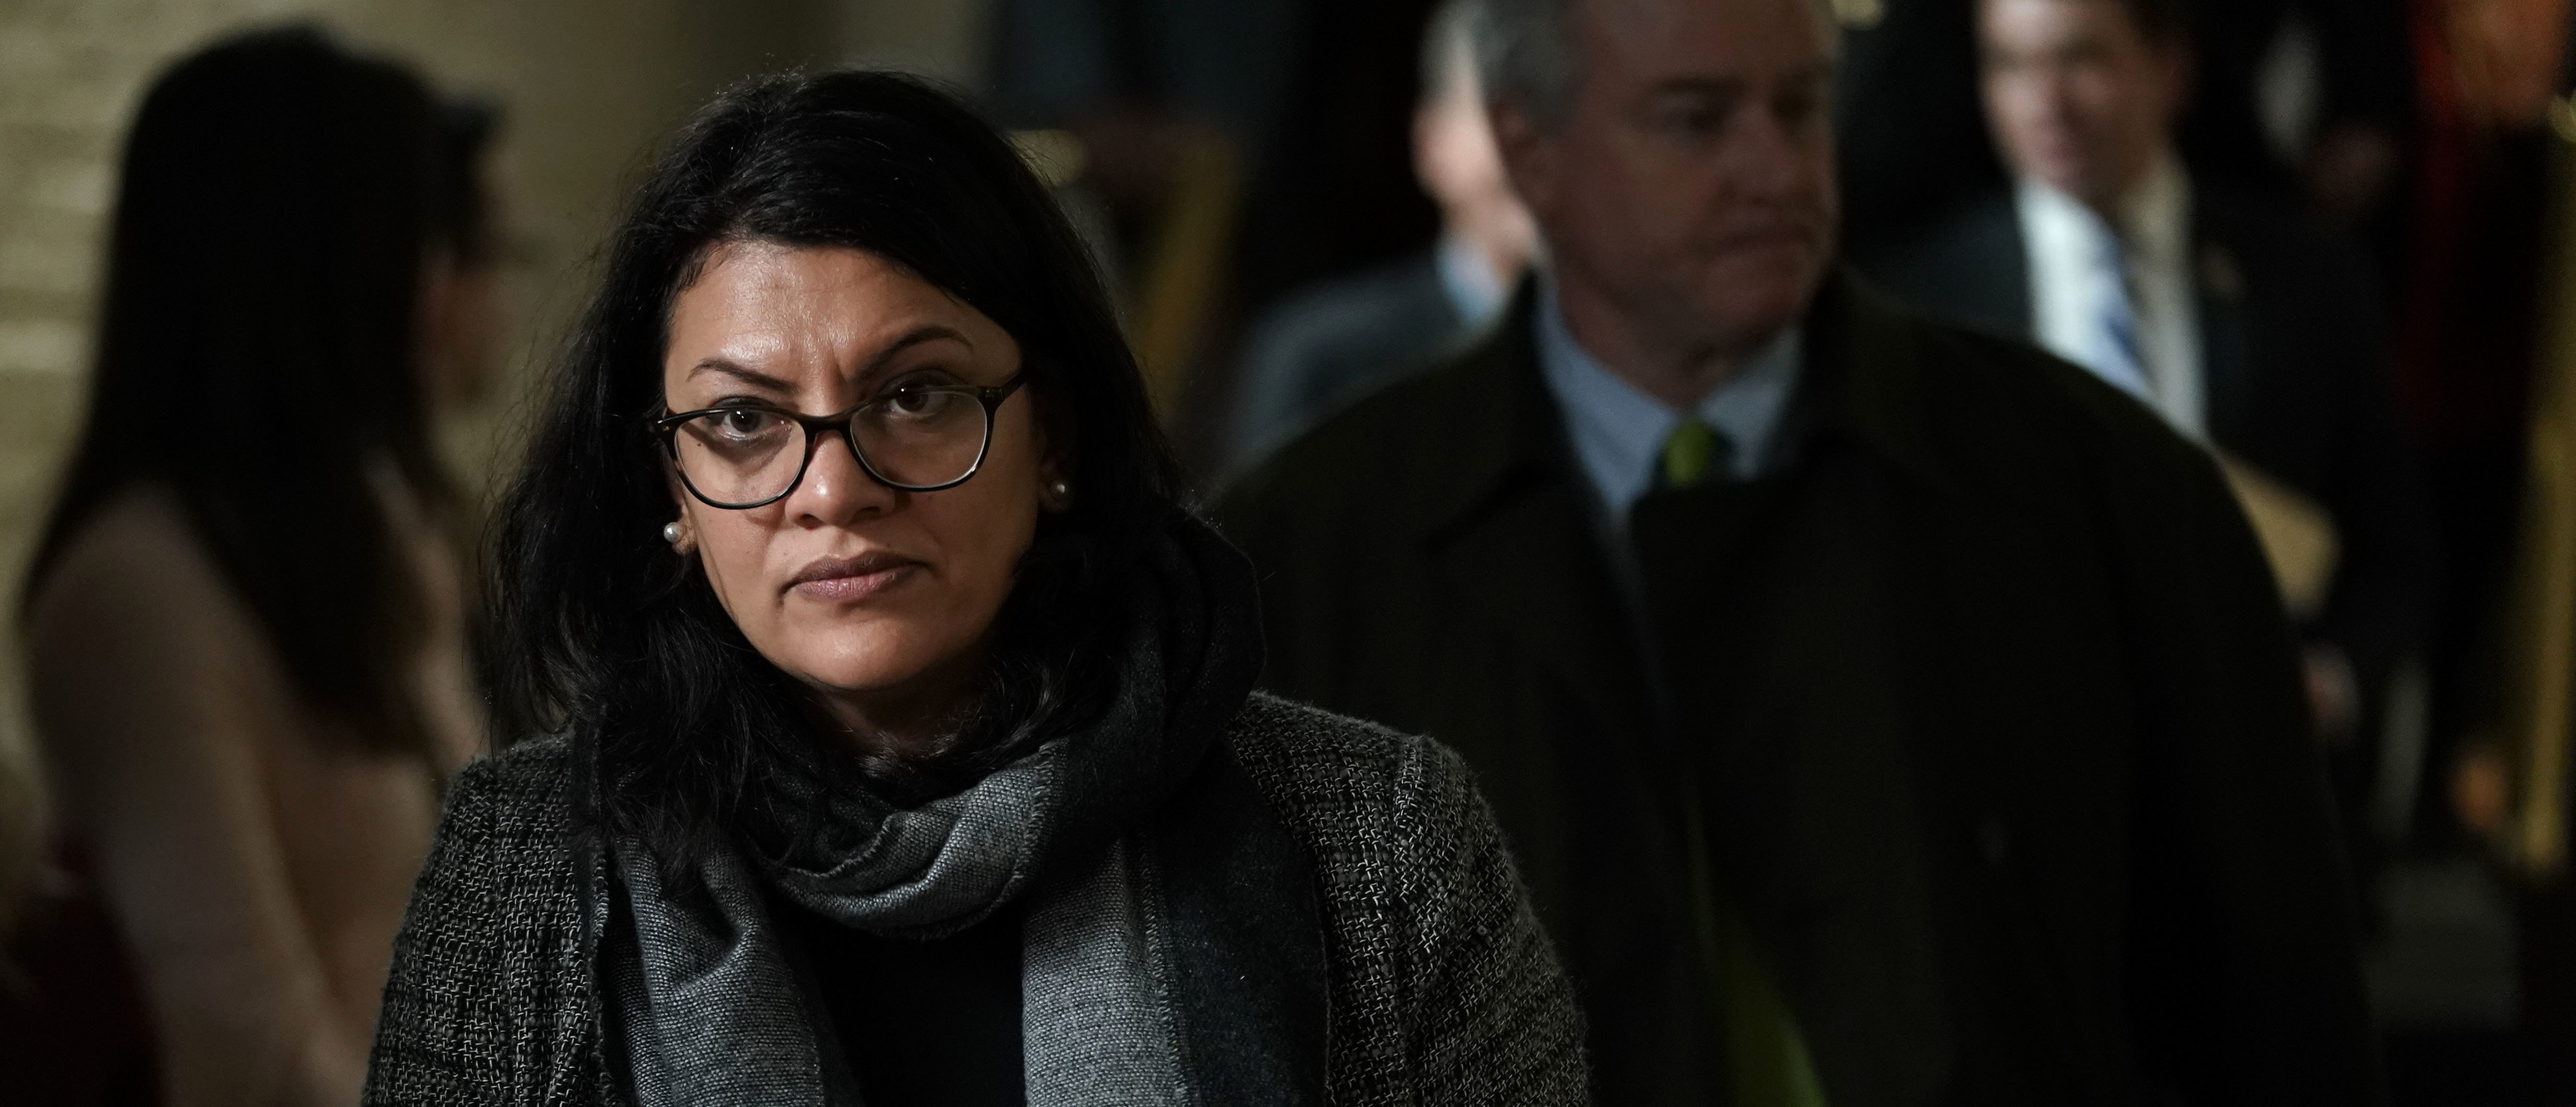 Rashida Tlaib Violated Campaign Finance Law, House Ethics Committee Unanimously Rules